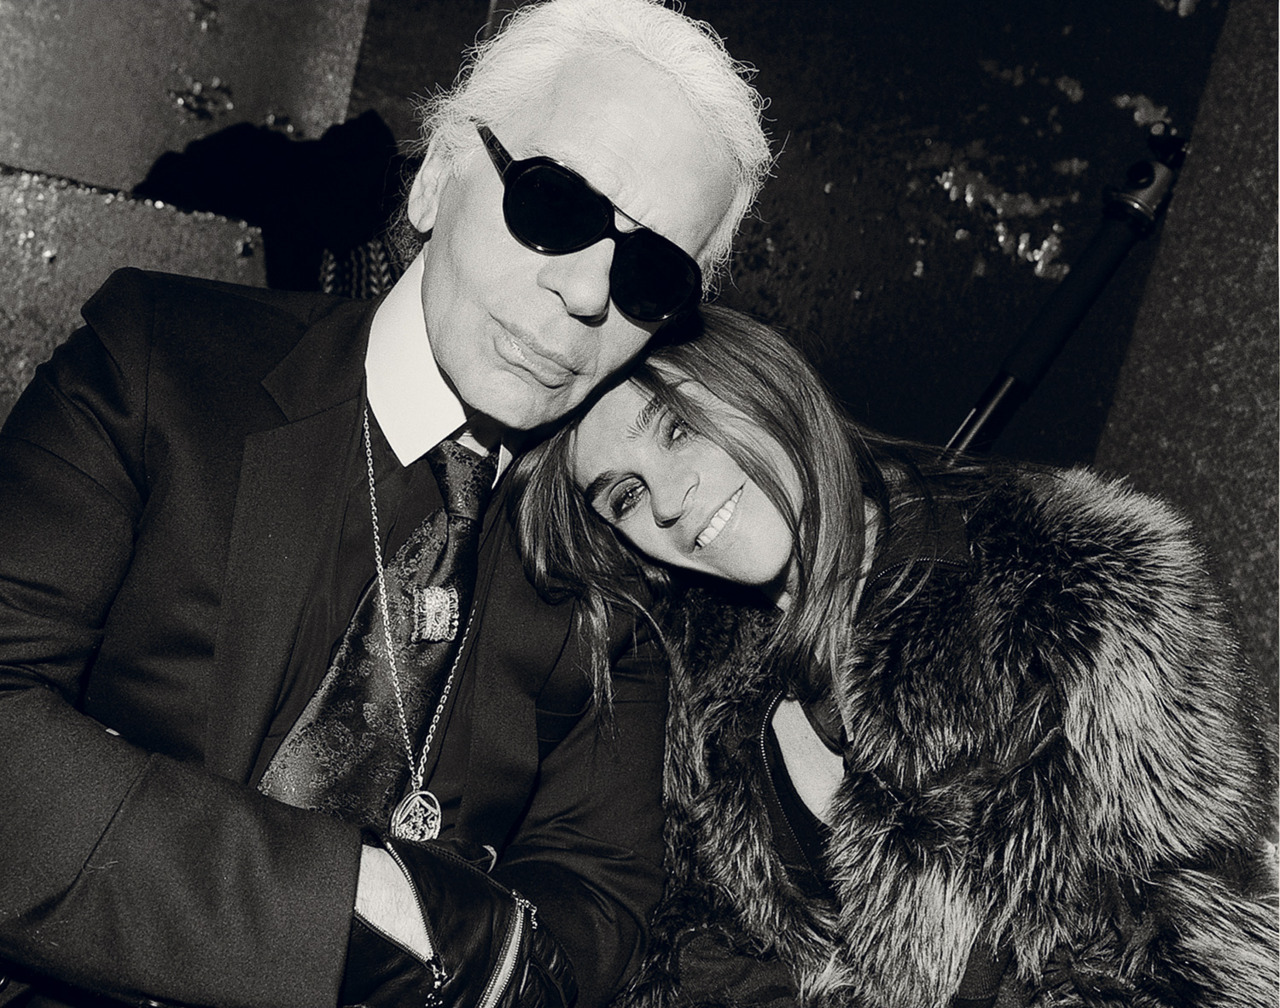 Carine Roitfeld talks to Karl Lagerfeld - Interview Magazine Arguably the most influential people in not only French, but also global fashion sit down to discuss fashion image movement and promotion, inspirations and trends! Full interview can be found here!